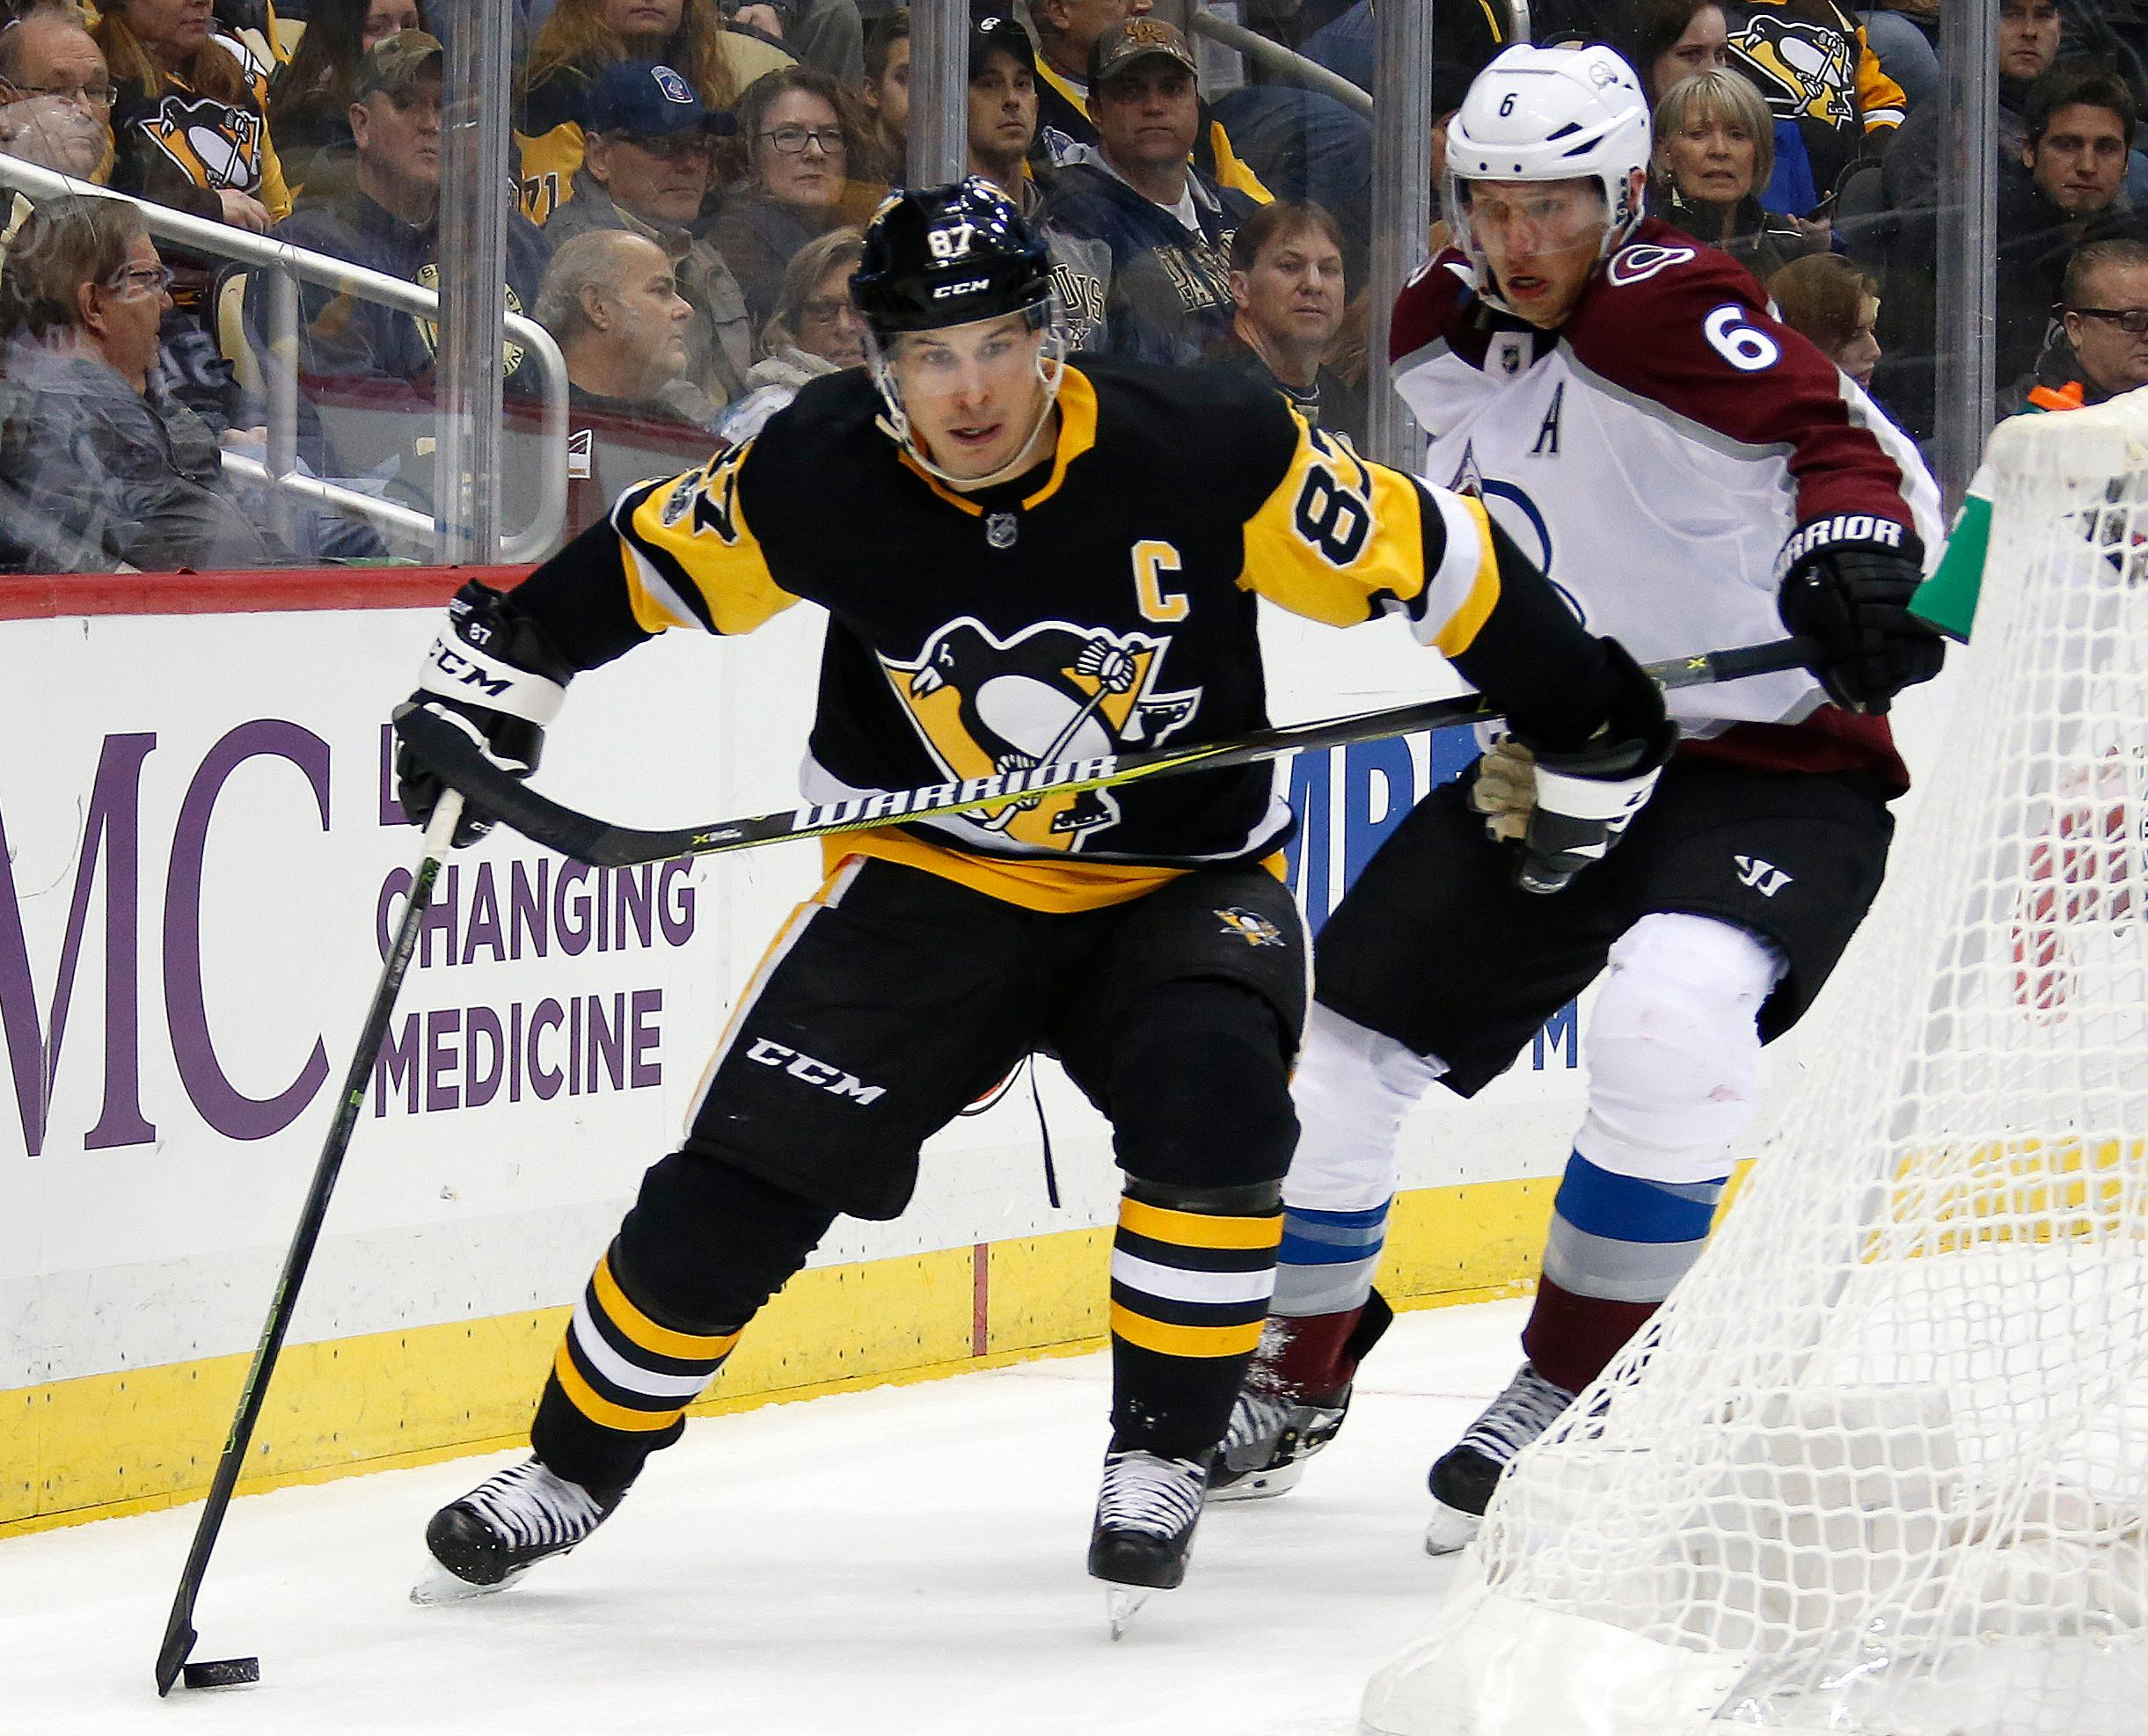 Pittsburgh Penguins' Sidney Crosby (87) works the puck behind the net with Colorado Avalanche's Erik Johnson (6) defending in the second period of an NHL hockey game in Pittsburgh, Monday, Dec. 11, 2017. (AP Photo/Gene J. Puskar)